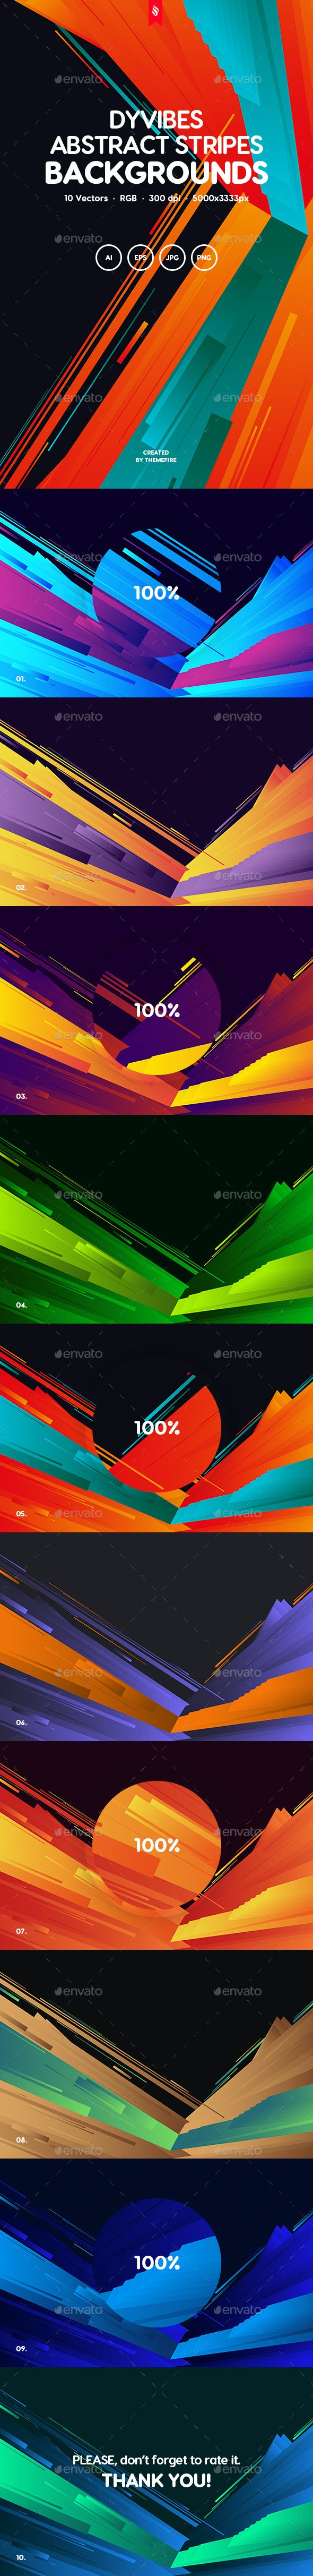 Dyvibes - Abstract Stripes Composition Backgrounds - Miscellaneous Backgrounds